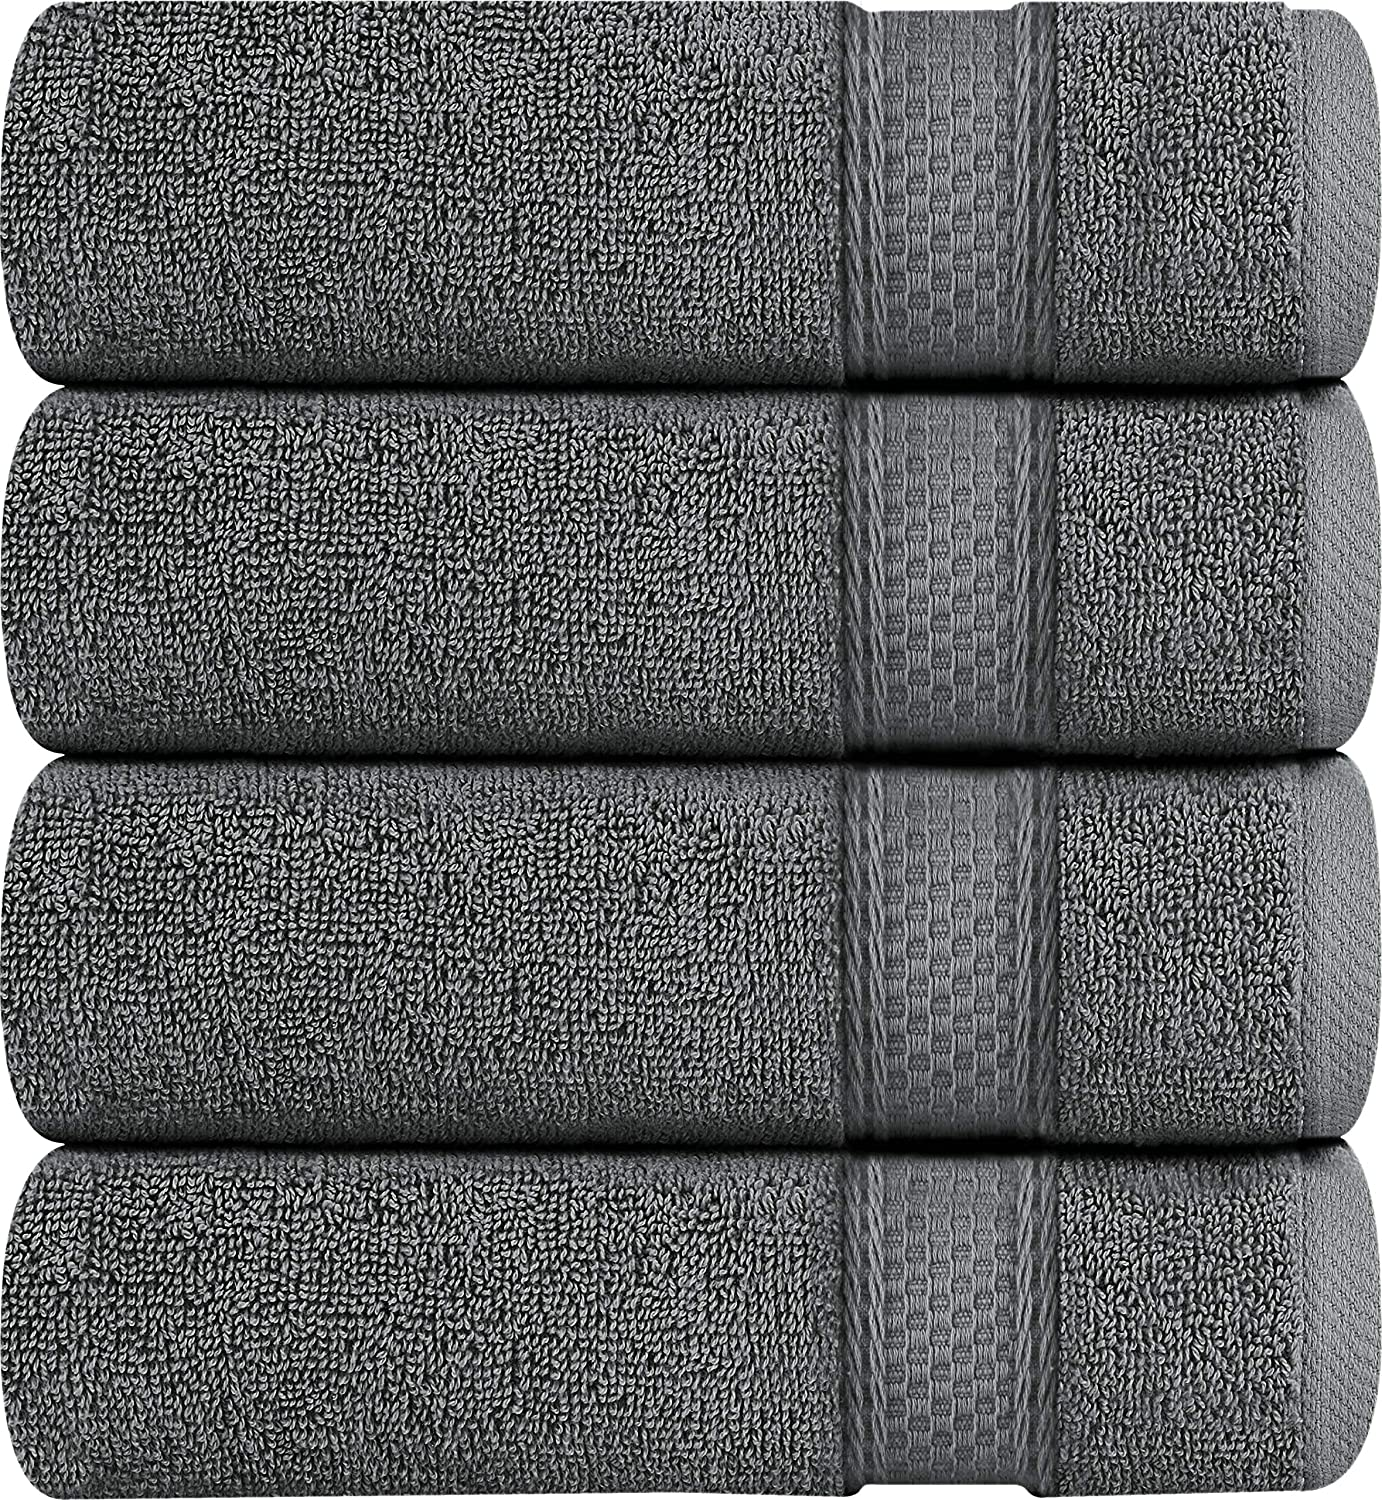 Utopia Towels Luxury Bath Towels, 4 Pack, 27x54 Inch, 700 GSM Hotel Towels, Dark Grey